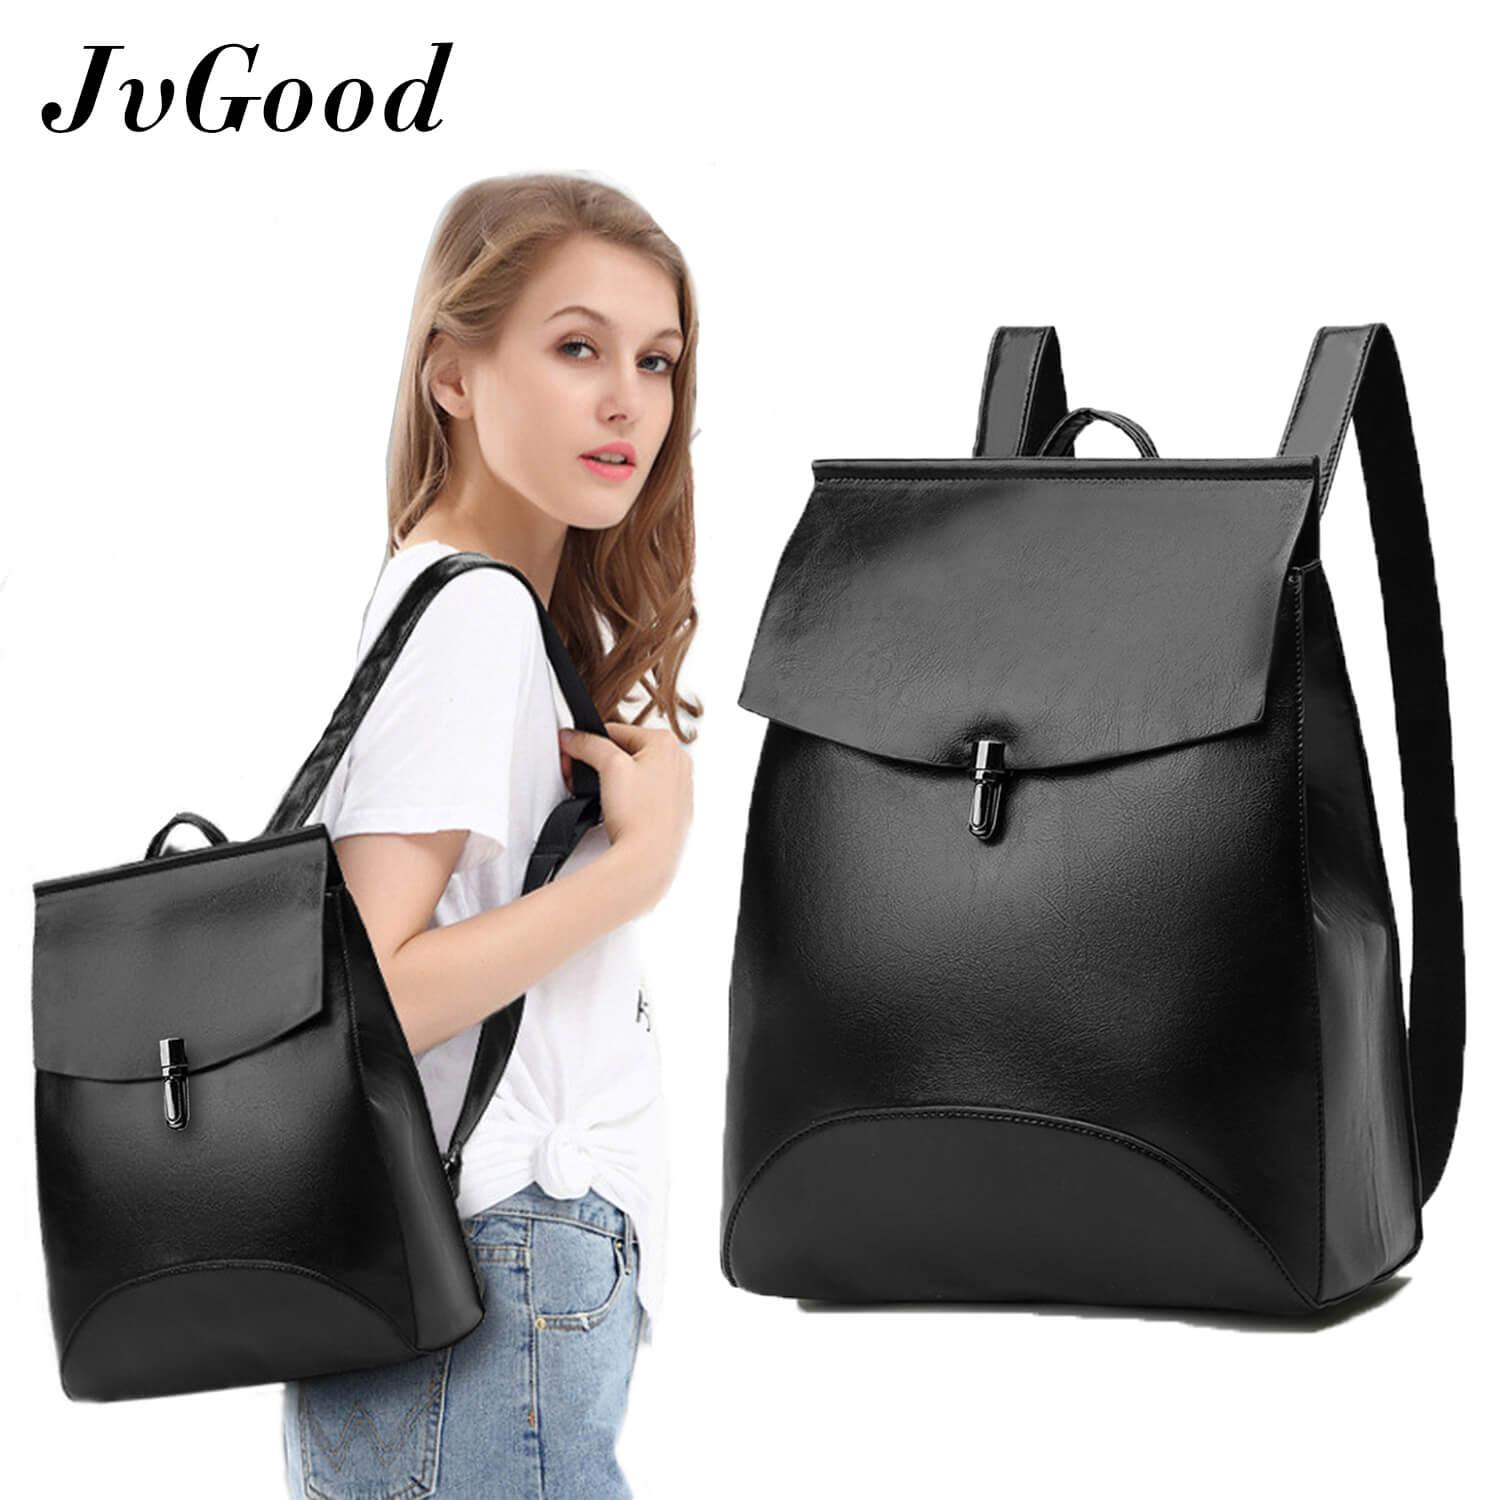 Jvgood Women S Pu Leather Backpack Purse Ladies Casual Shoulder Bag Sch**L Bag For Girls Promo Code